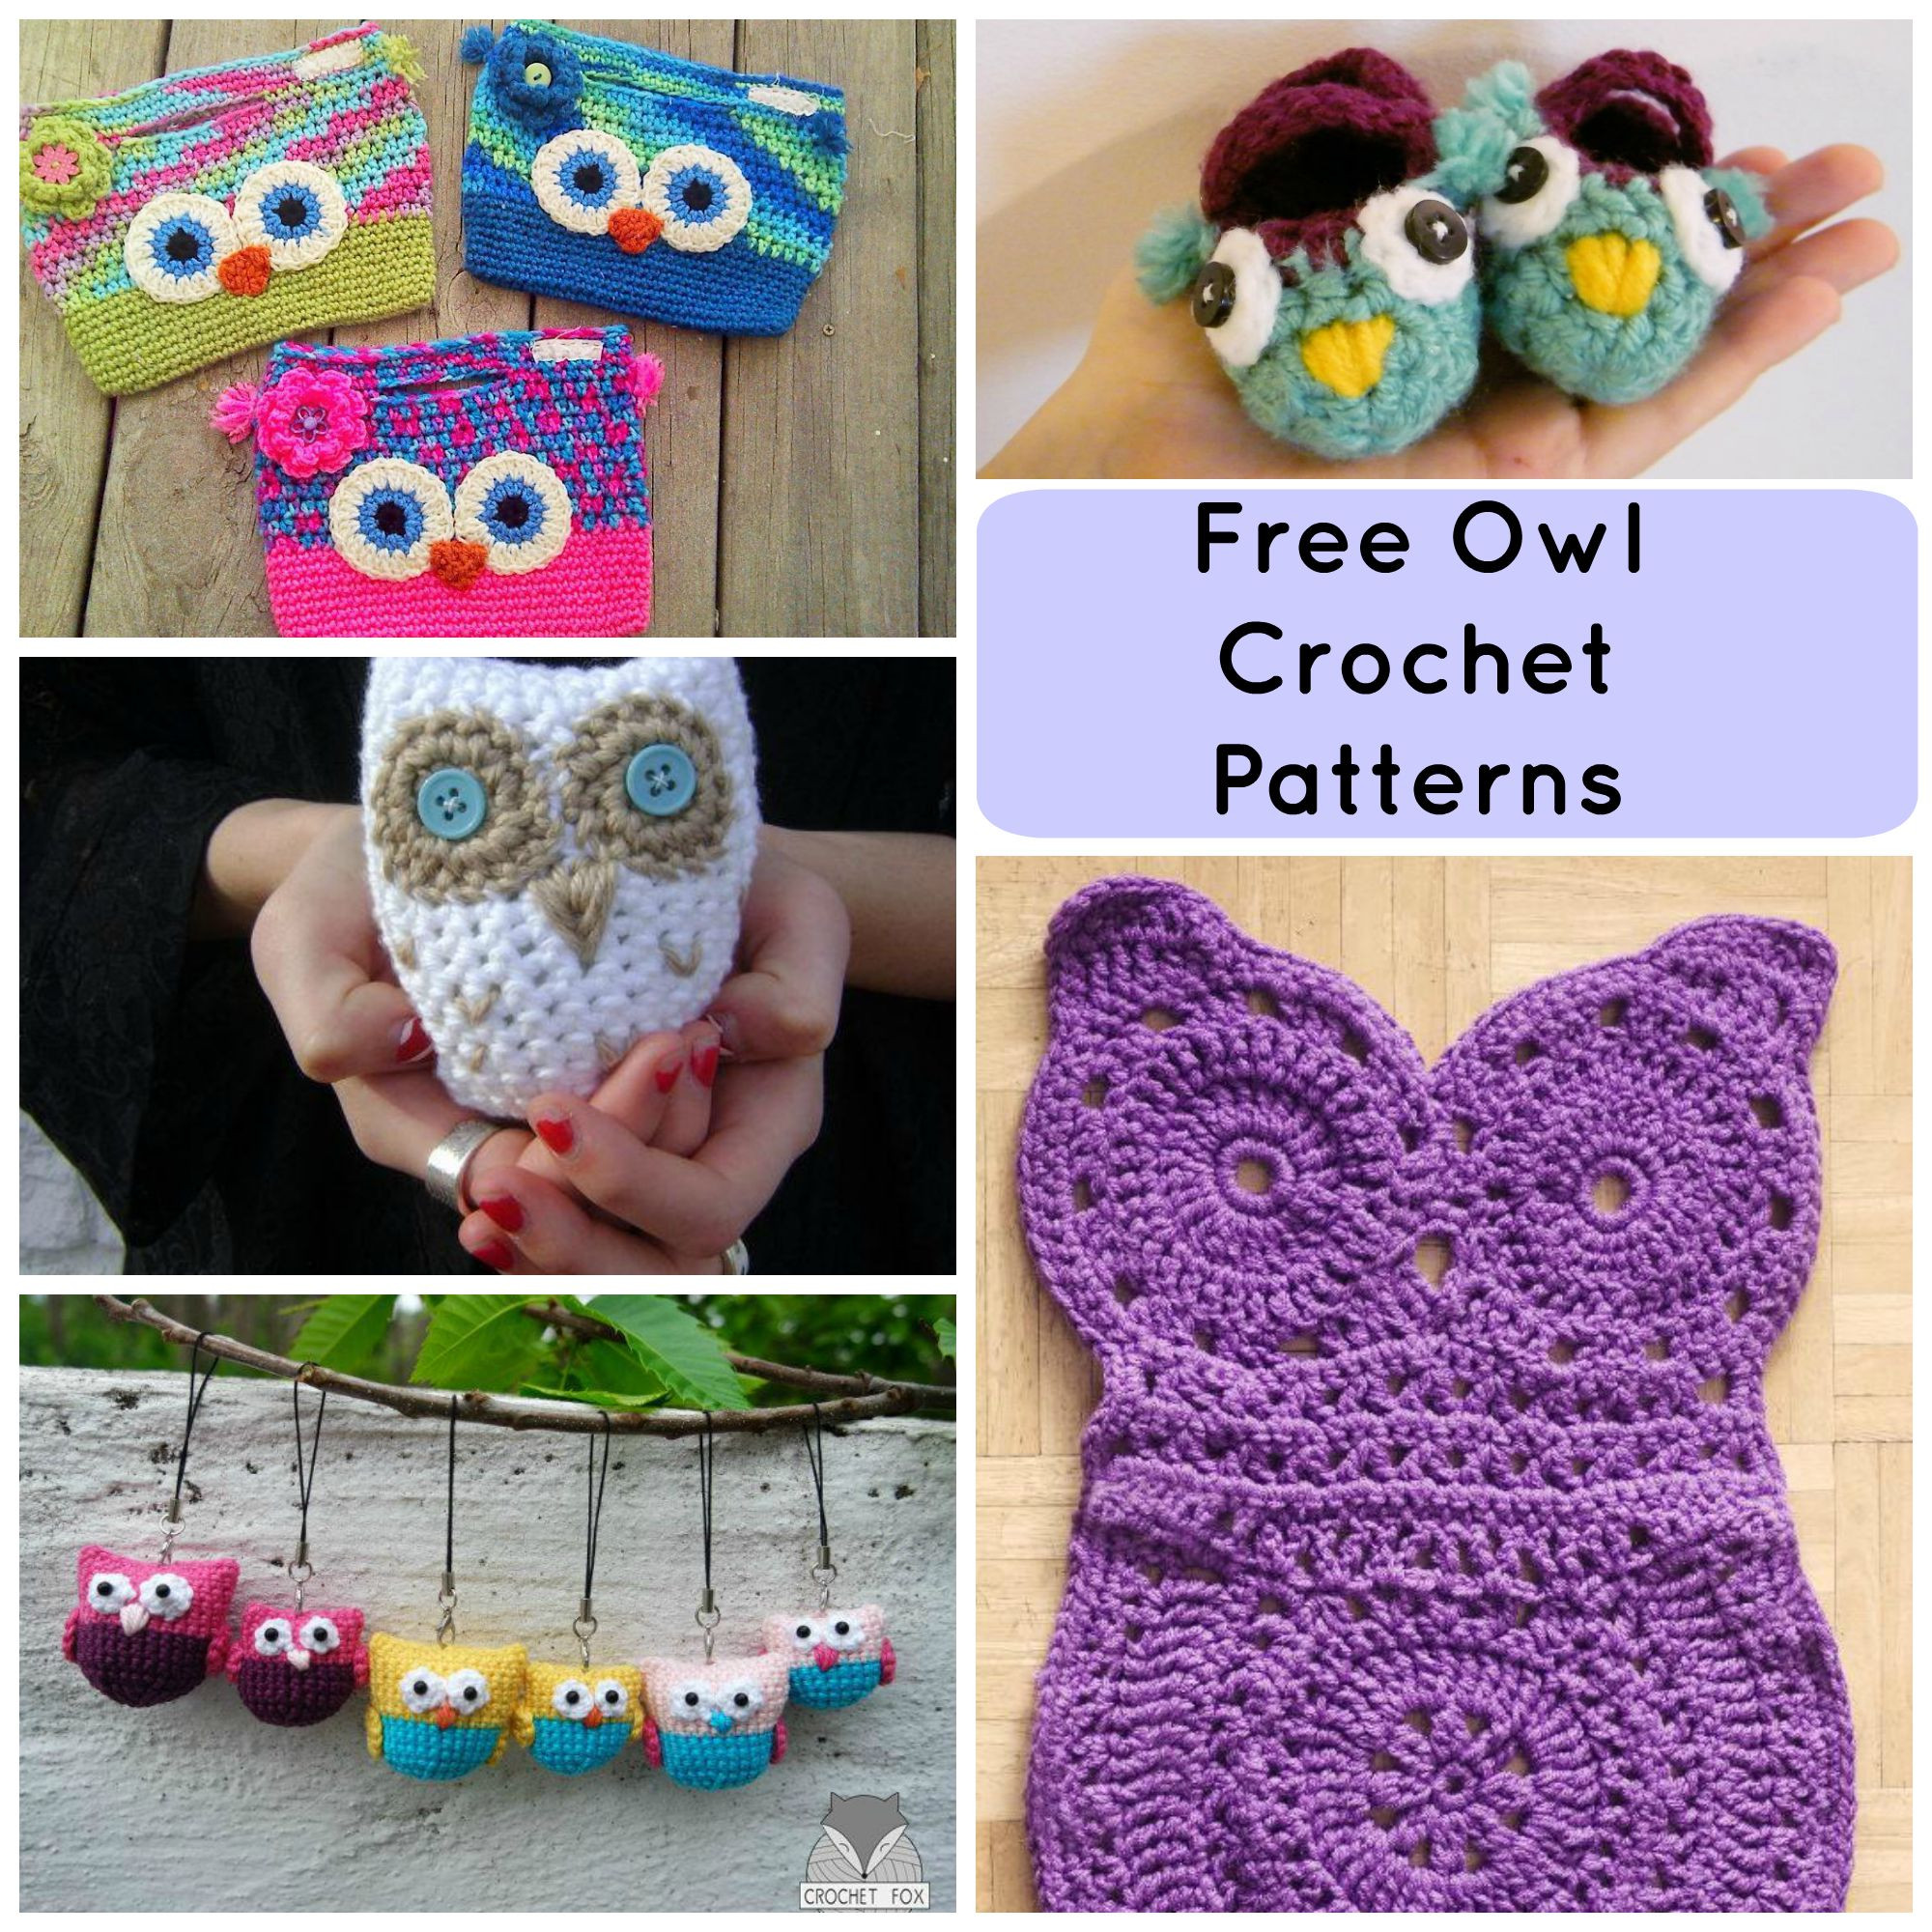 Free Crochet Patterns Luxury 7 Hoot Worthy Free Crochet Owl Patterns Of New 41 Photos Free Crochet Patterns